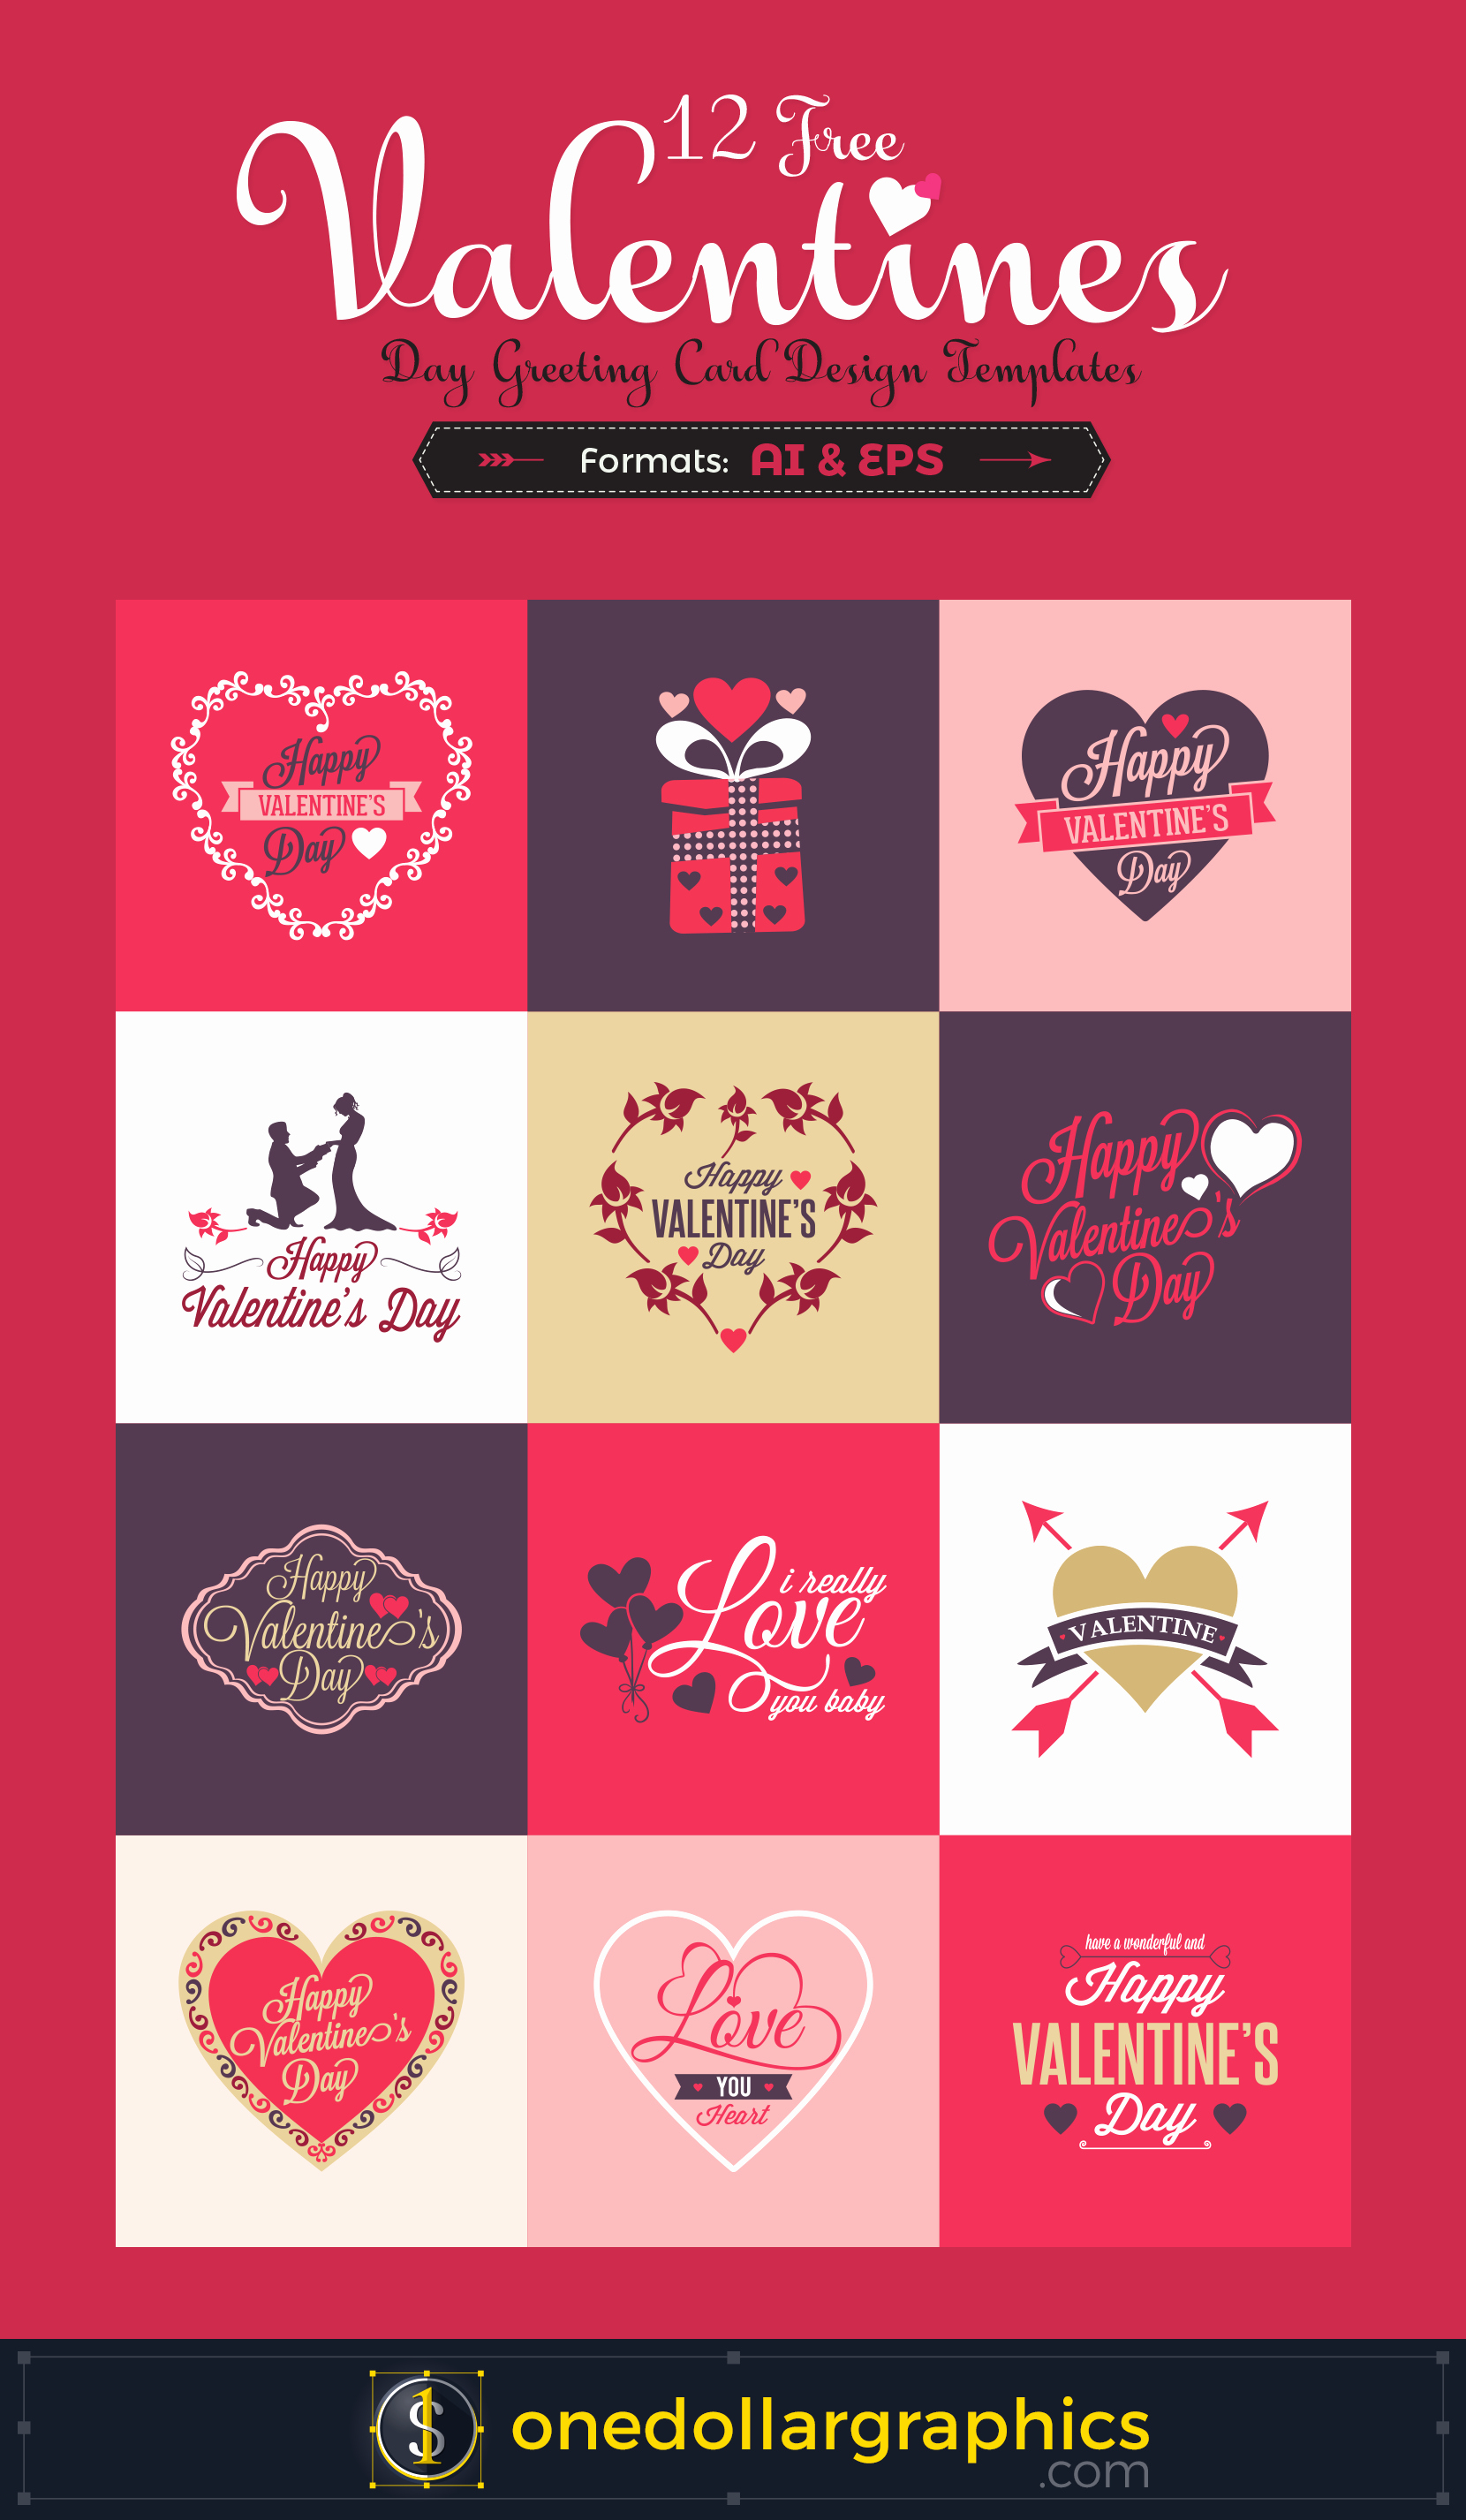 Free Mother's Day Card Templates Awesome 12 Free Valentine S Day Greeting Card Design Templates